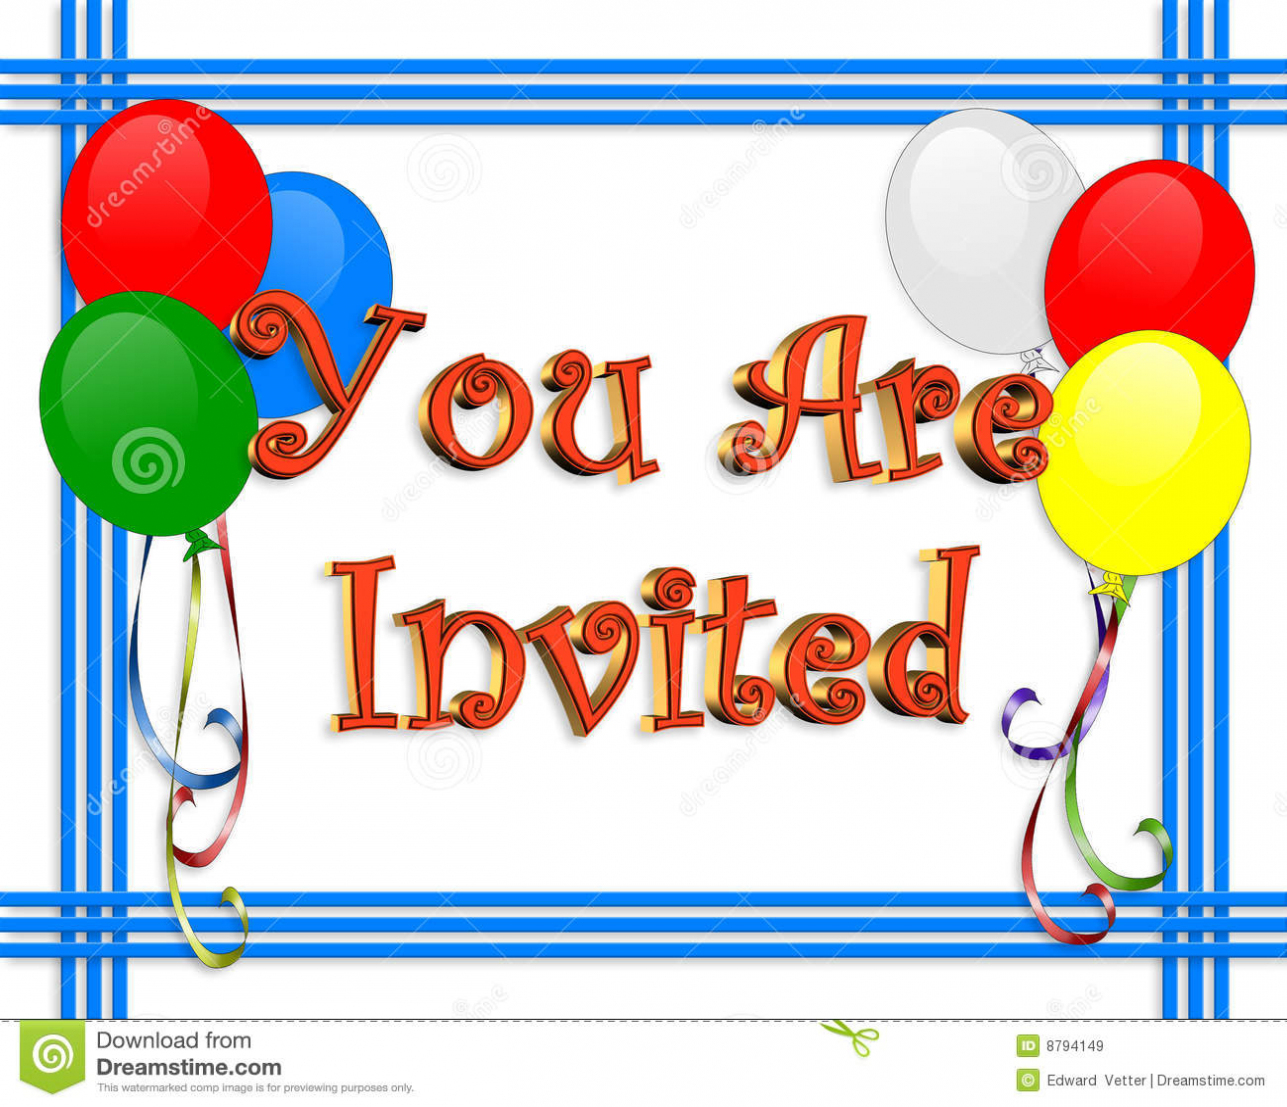 birthday invitation borders ; collection-of-birthday-invitations-borders-and-backgrounds-photos-borders-for-birthday-invitations